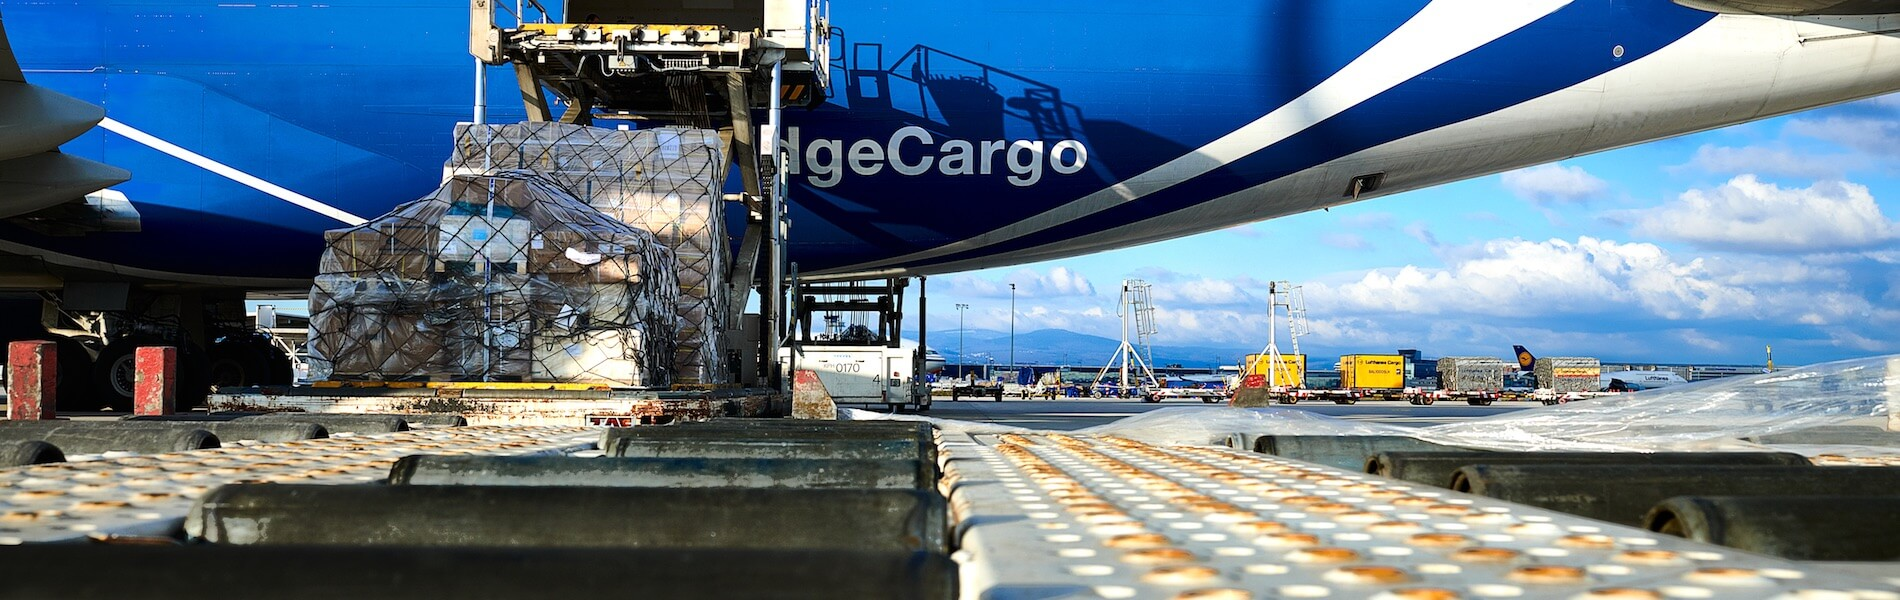 Holy Air Freight: Air Freight at Year's End